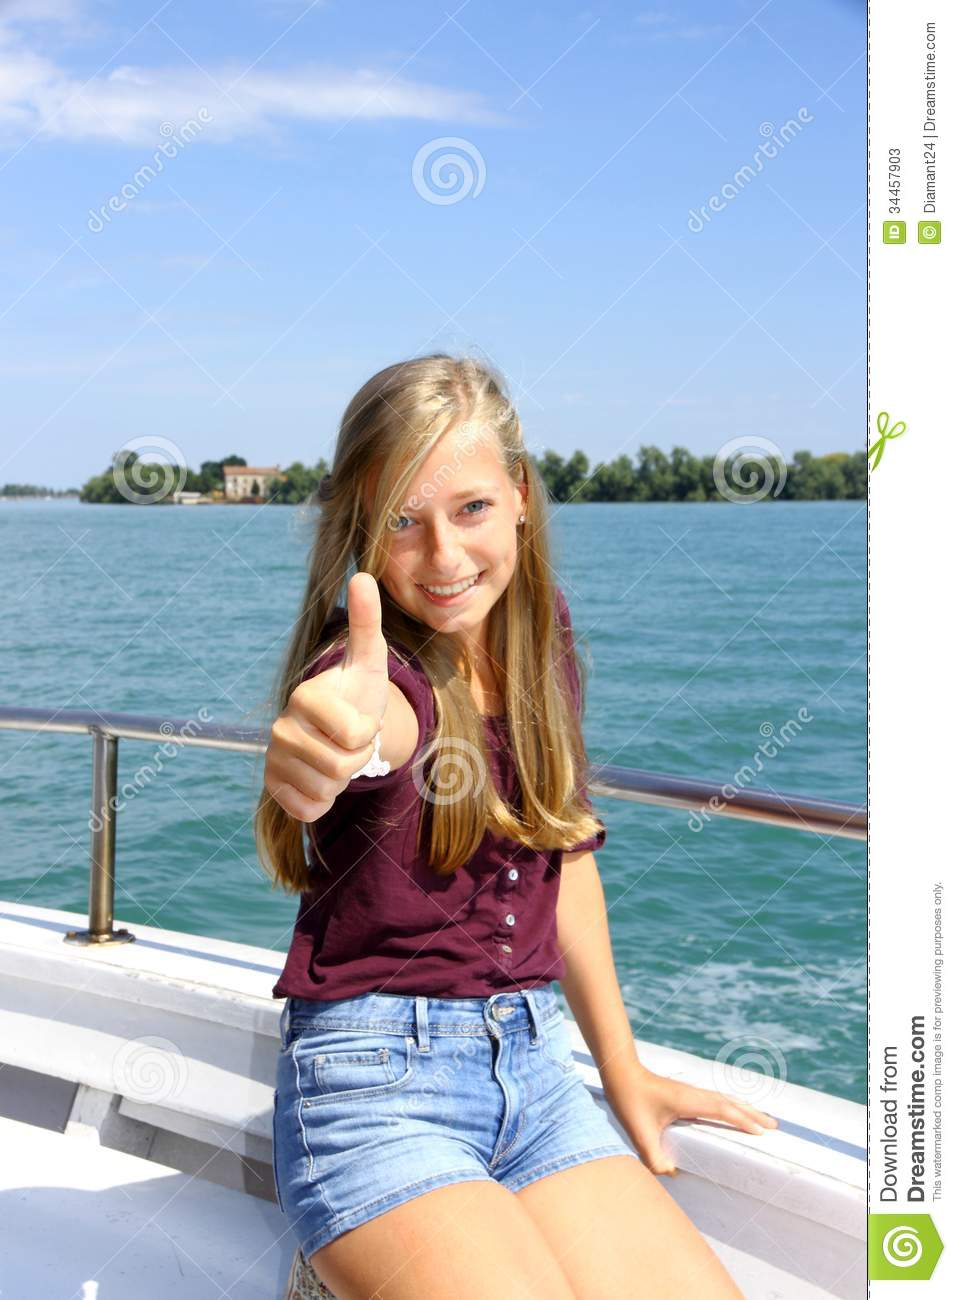 Young Blonde Teen Aged Girl Smiling At The Beach Stock: Happy Young Blonde Girl Shows Ok Sign On Ship At Sea Stock